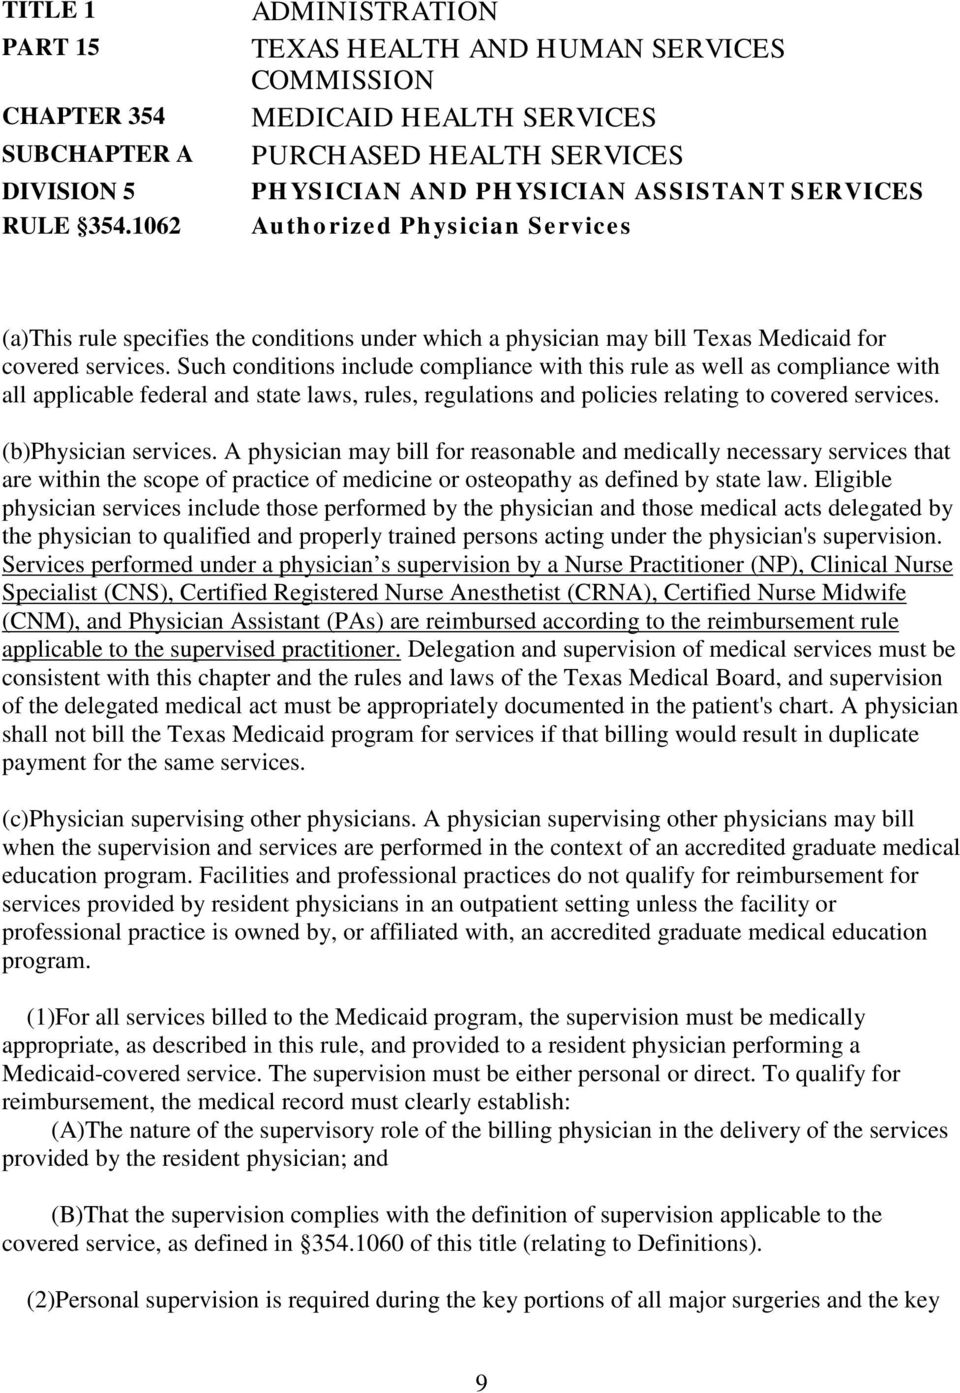 specifies the conditions under which a physician may bill Texas Medicaid for covered services.